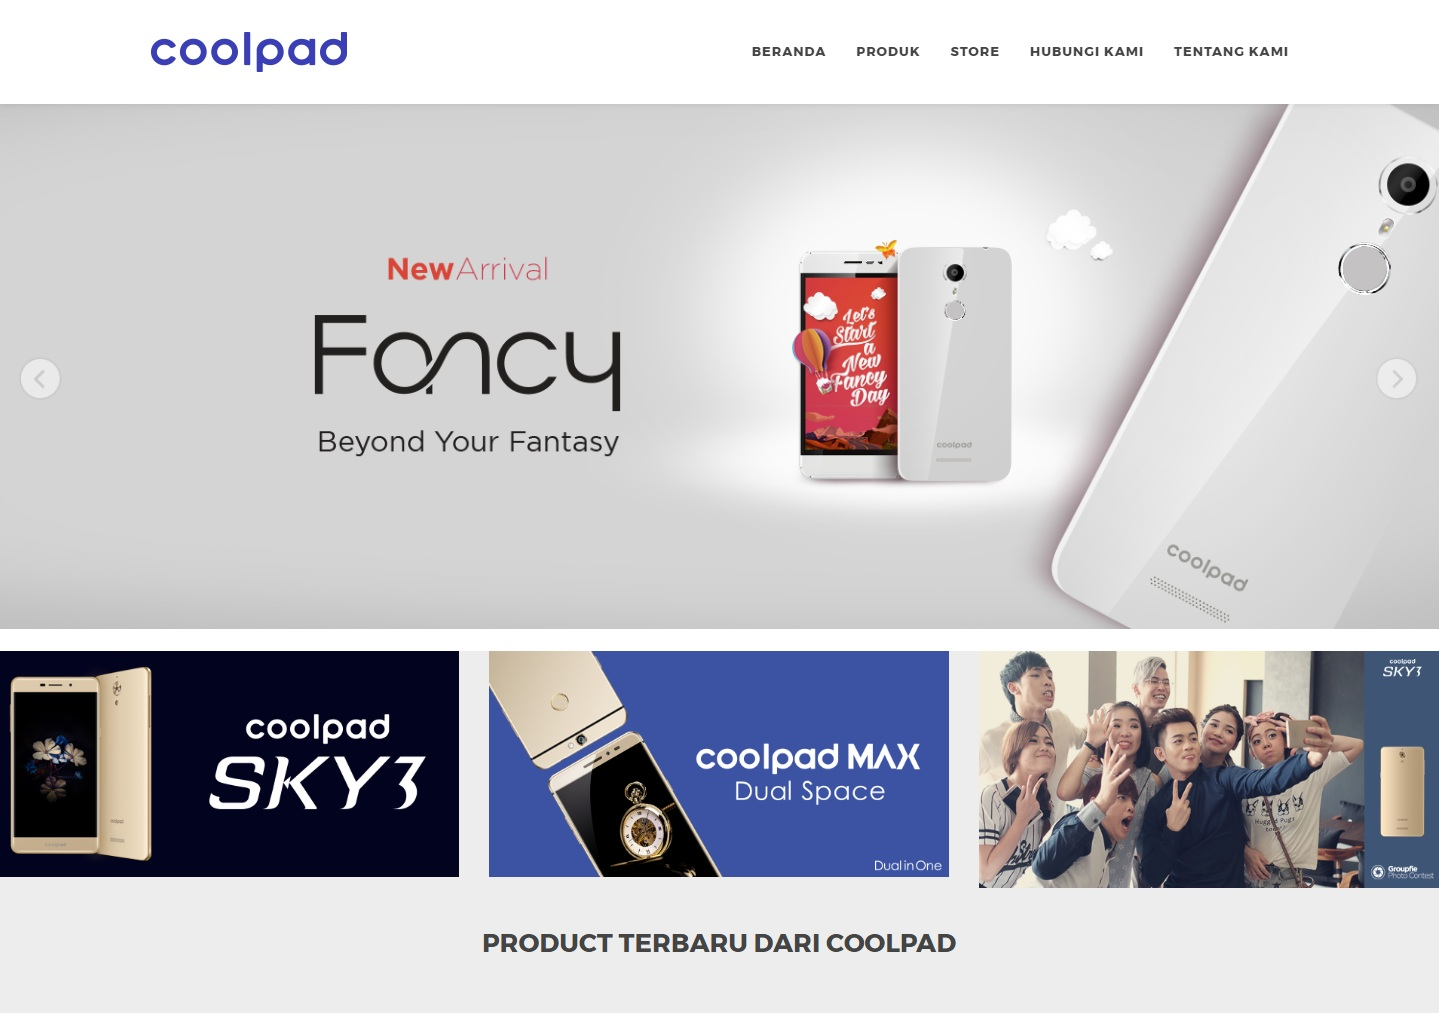 Coolpad Indonesia